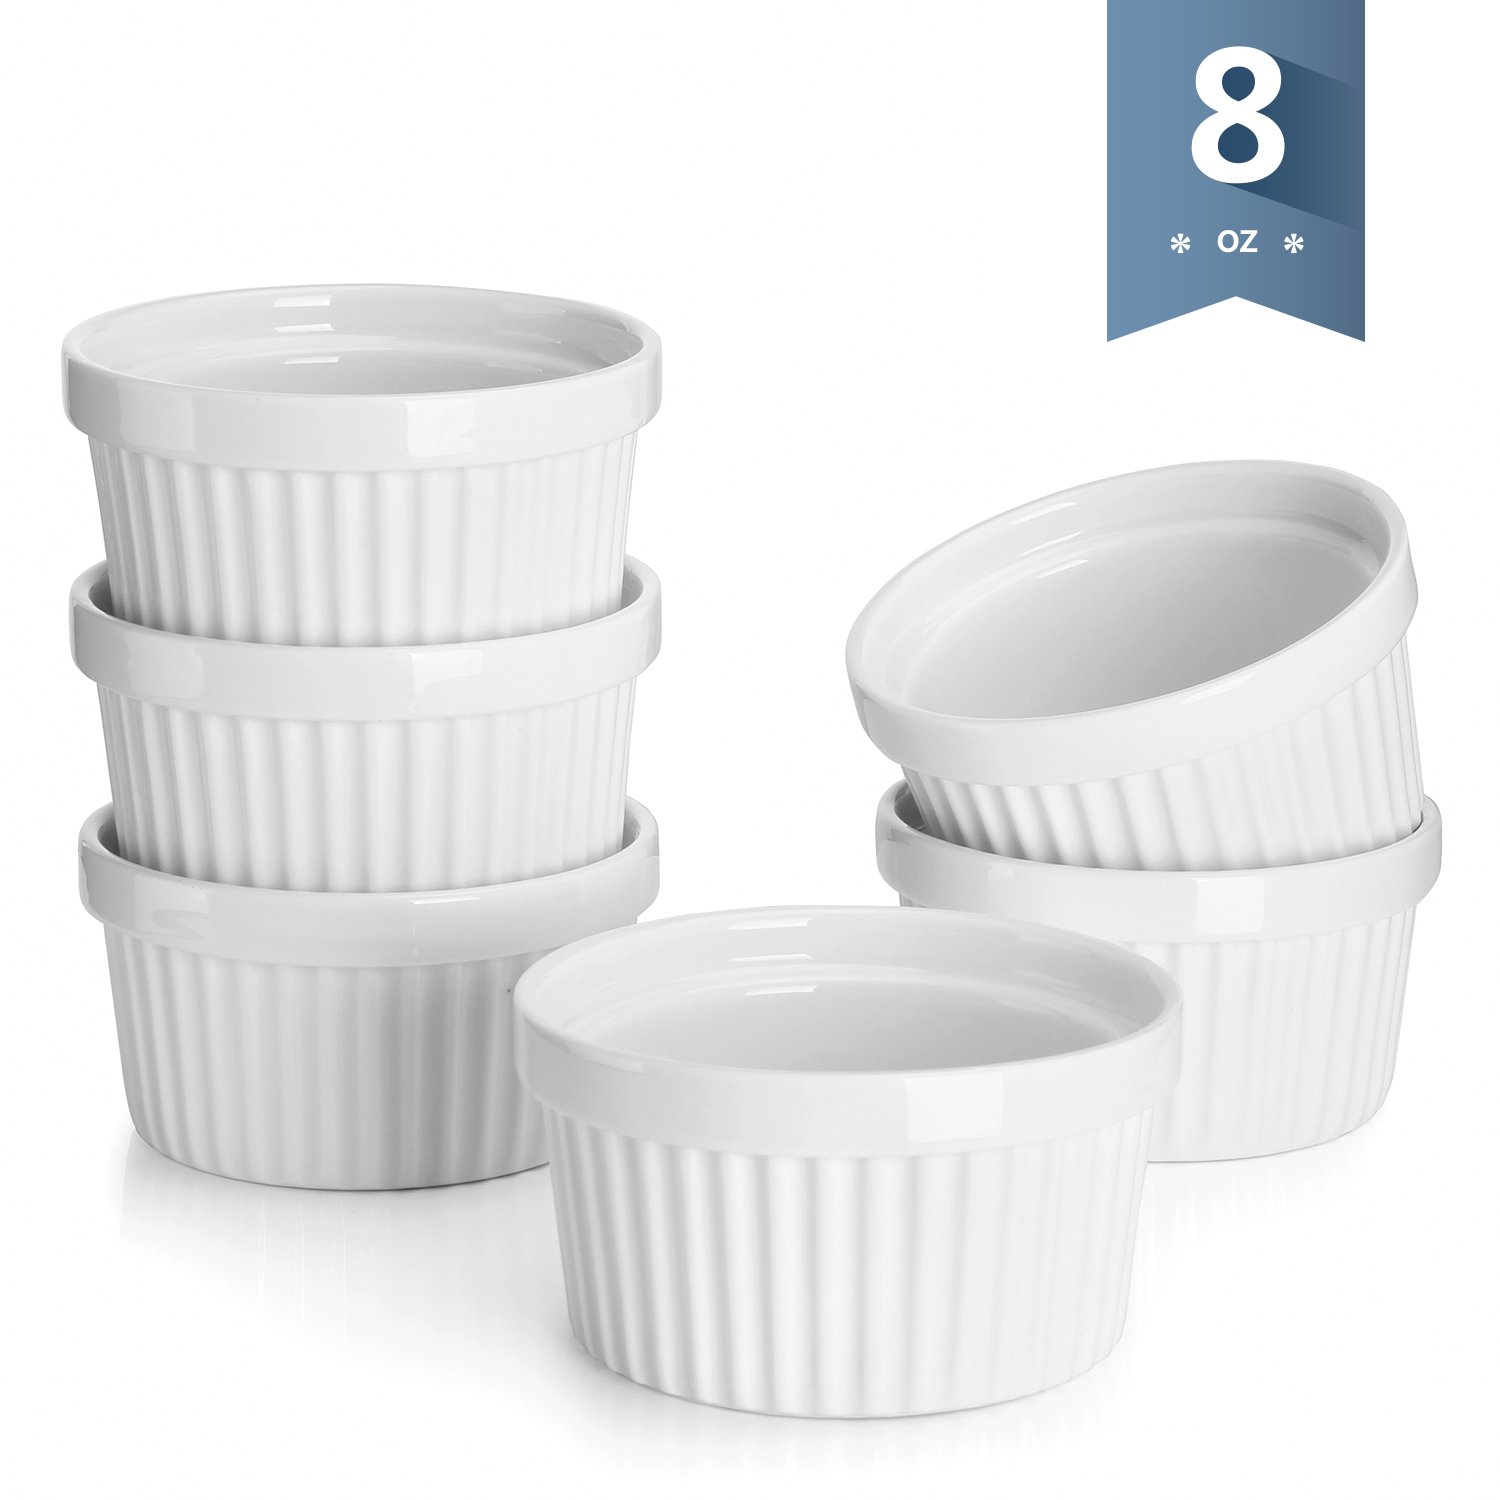 Sweese 5105 Porcelain Souffle Dishes, Ramekins - 8 Ounce for Souffle, Creme Brulee and Ice Cream - Set of 6, White by Sweese